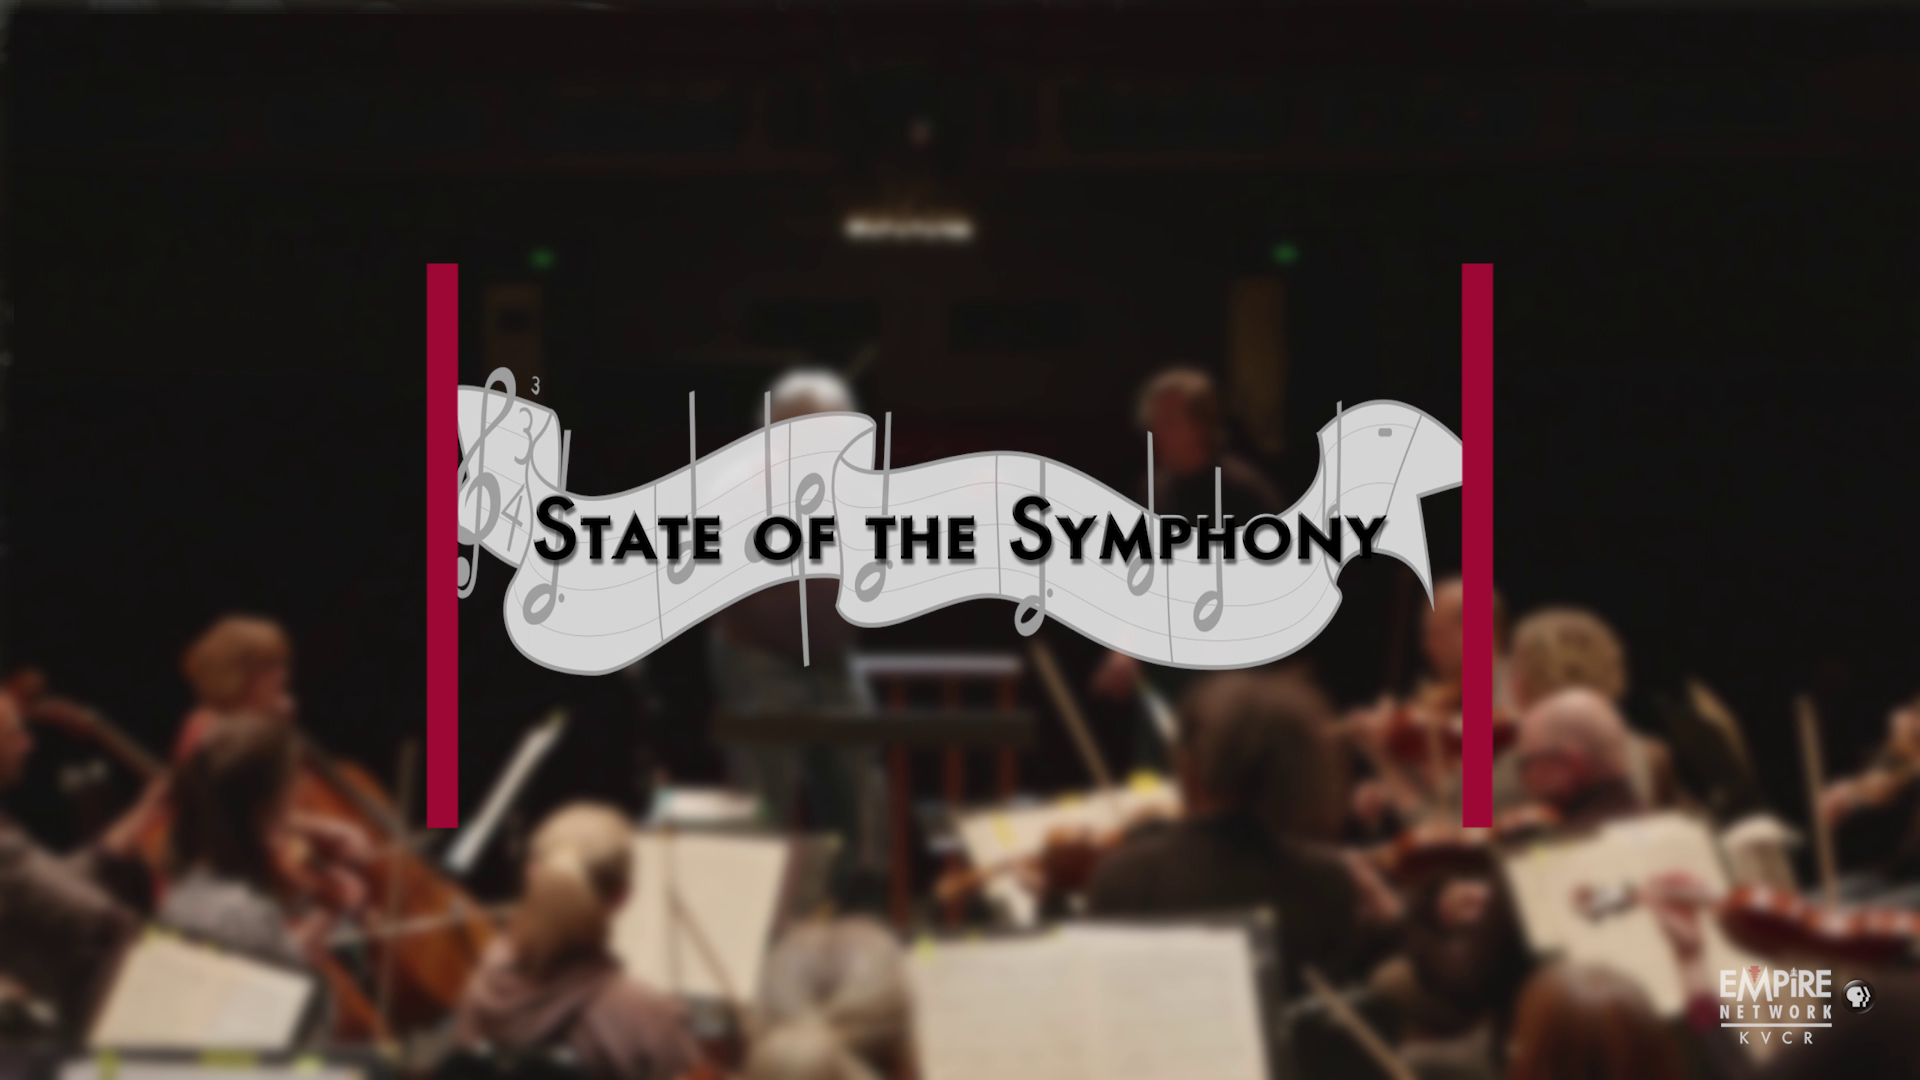 State of the Symphony